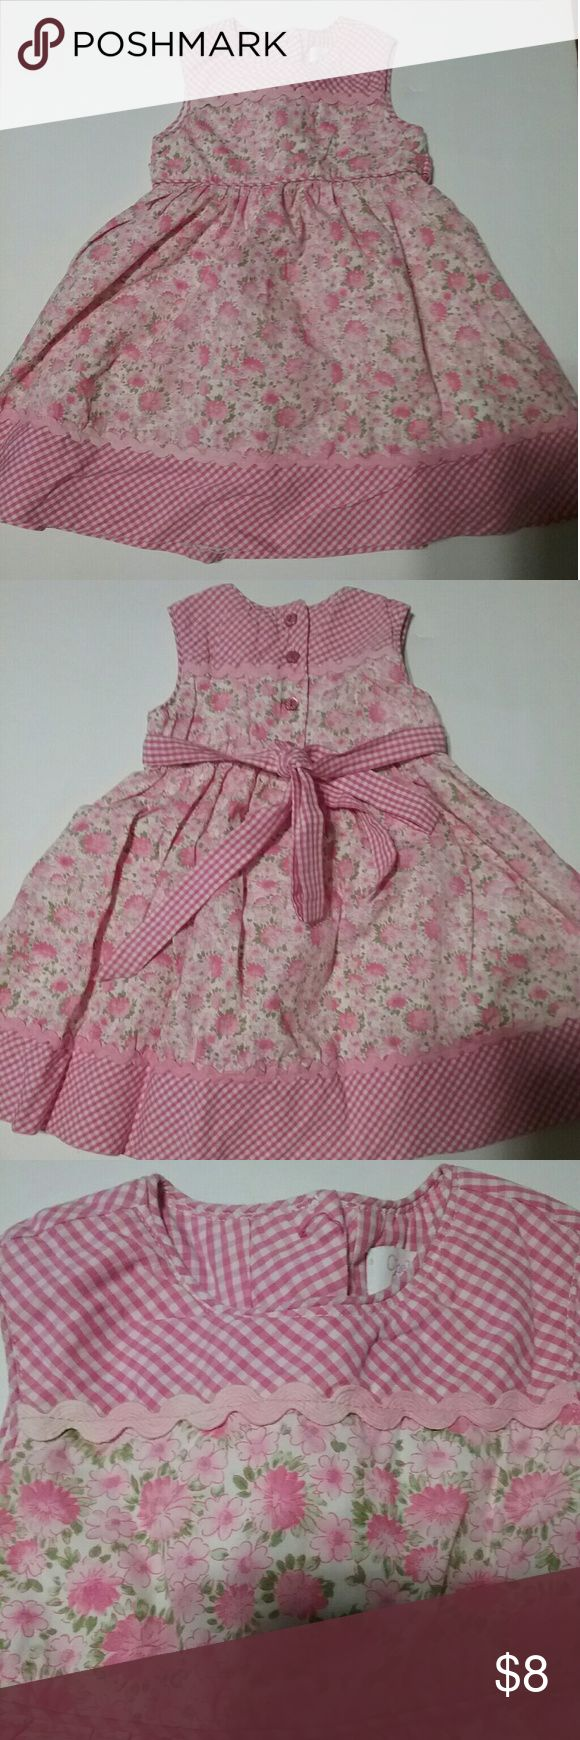 Baby Girl's Pink Flowery Dress In good condition. There is a little discoloration on the appliqués on the top part in front and back, but not too noticeable.  See pics. Chelsea's Corner Dresses